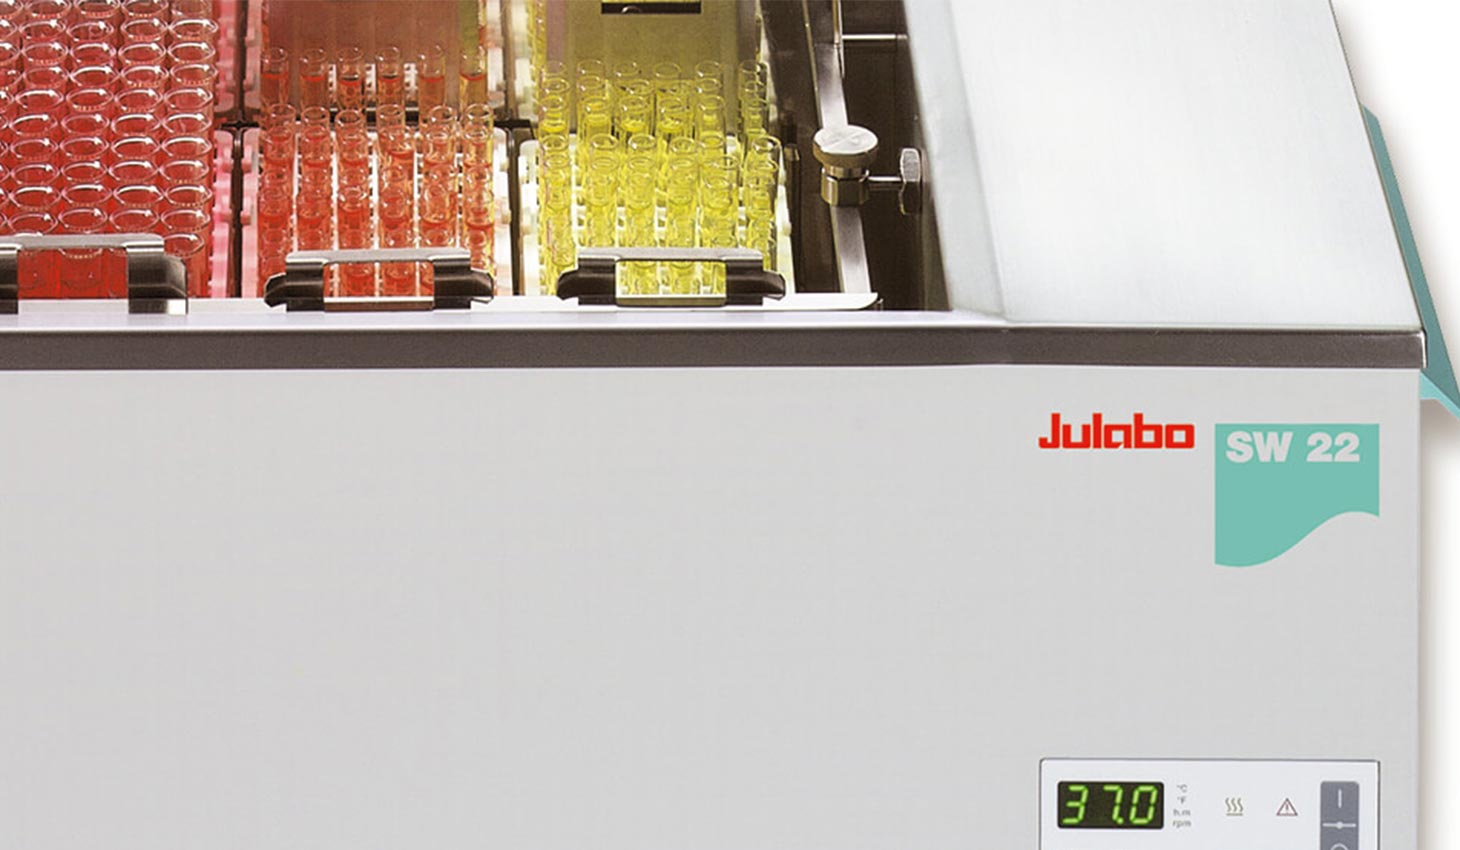 racks of test tubes filled with red and yellow liquid sitting in a Julabo SW22 temperature controller